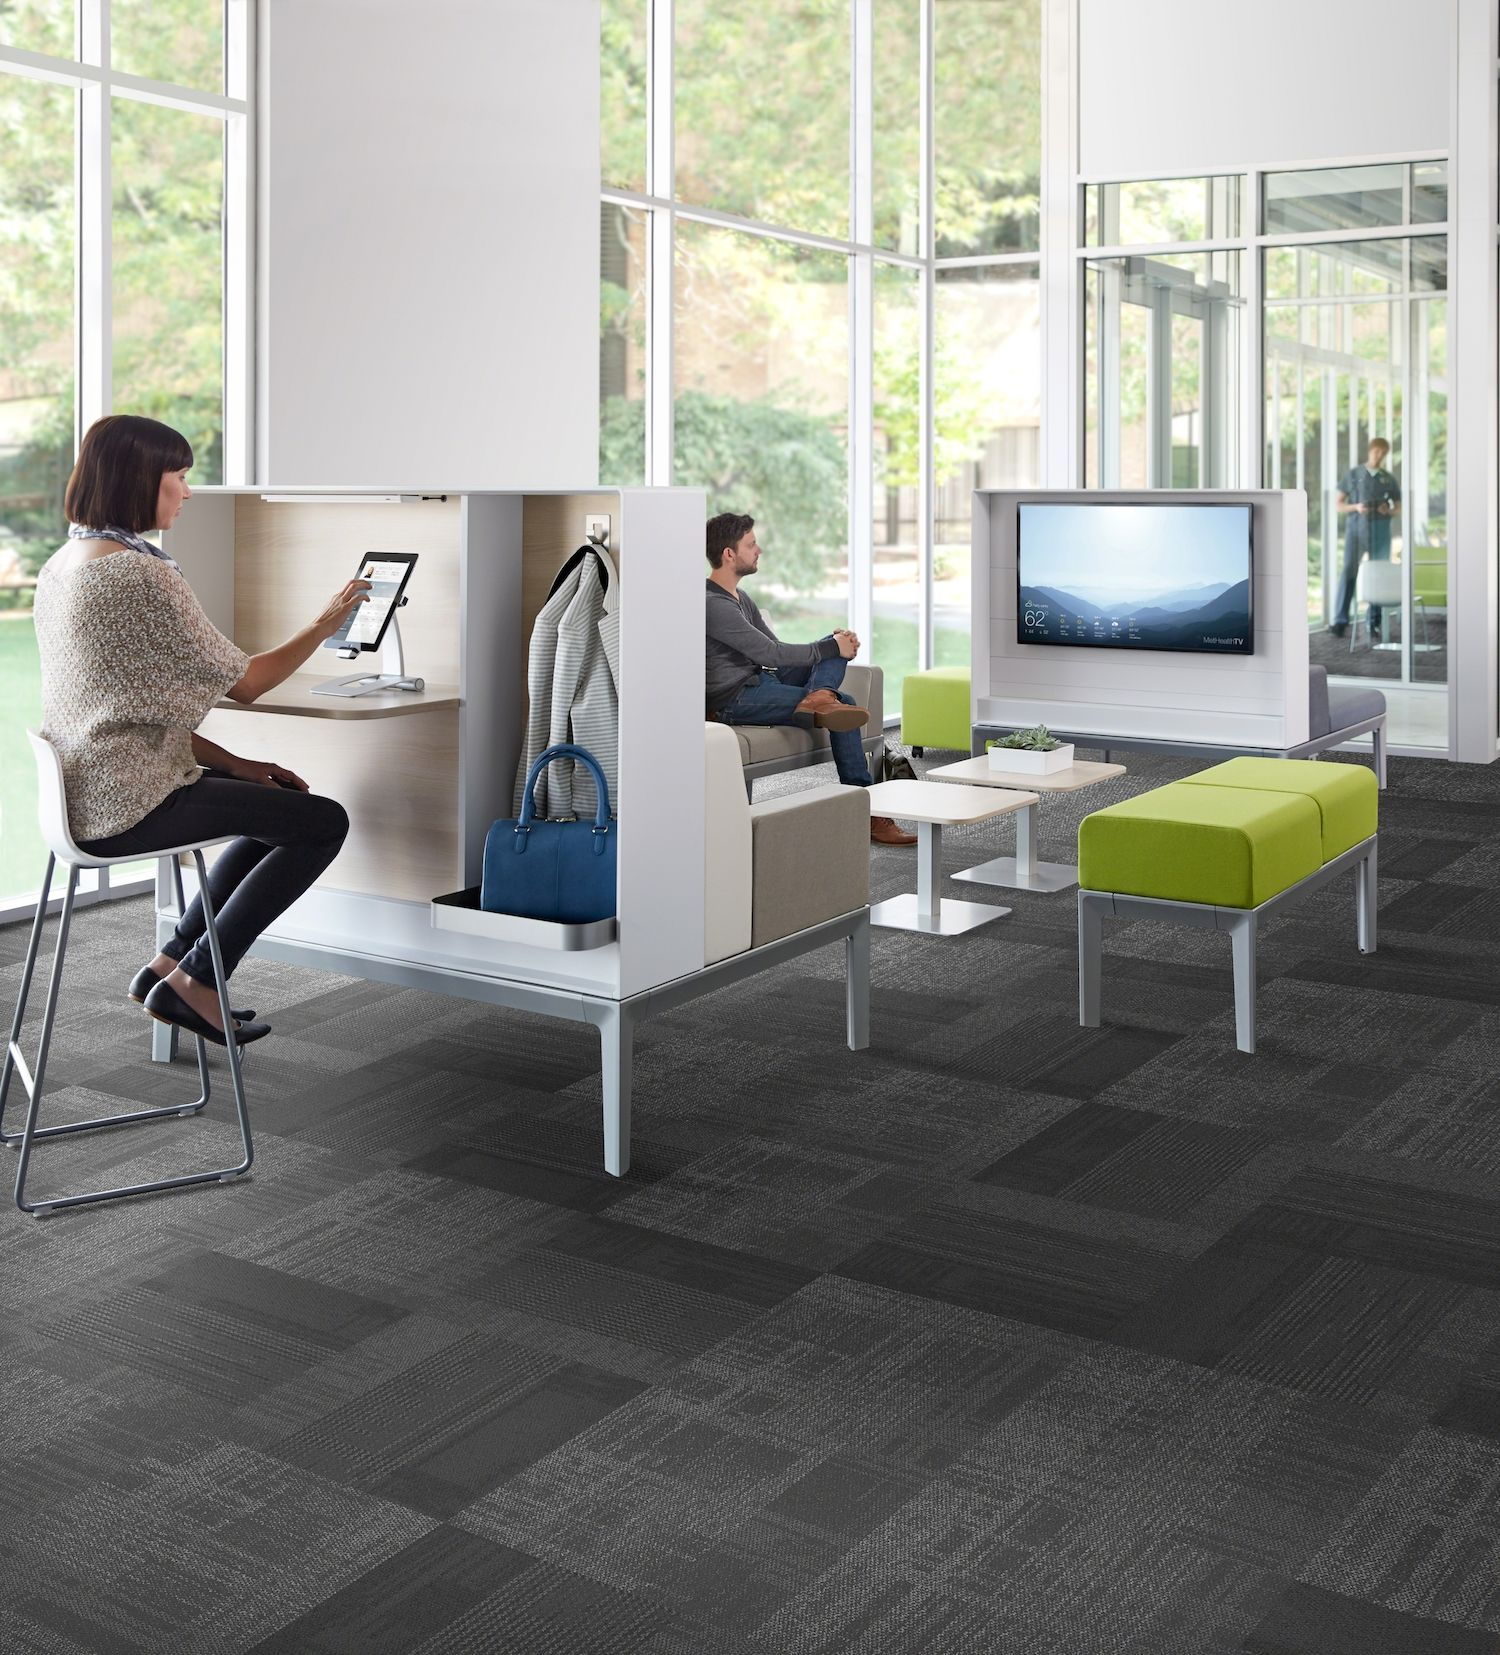 Better Waiting Rooms Simply Cant Wait Steelcase Health Waiting Room Design Office Waiting